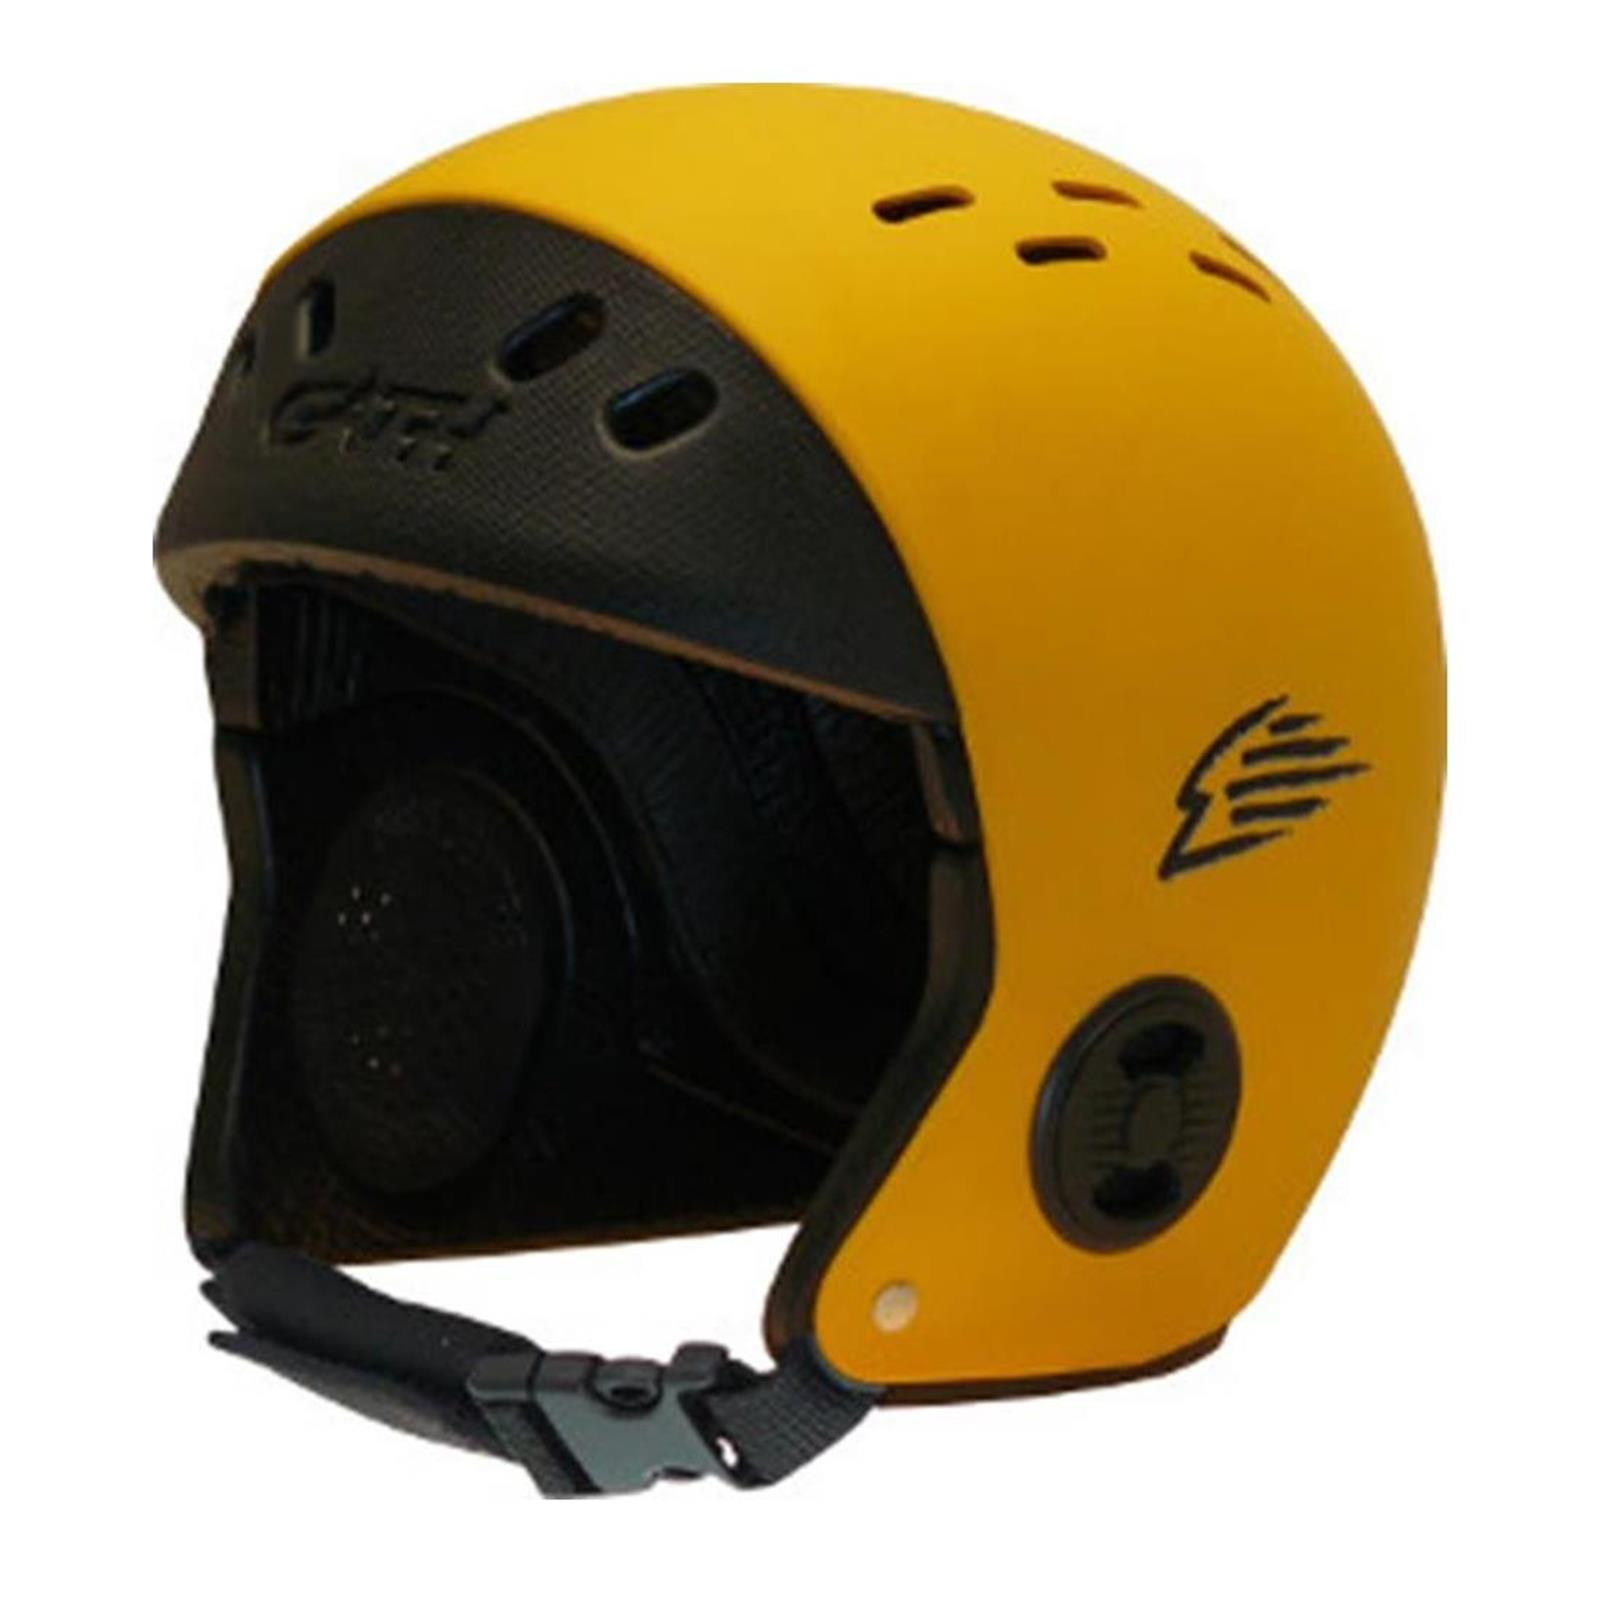 GATH Helm Standard M yellow